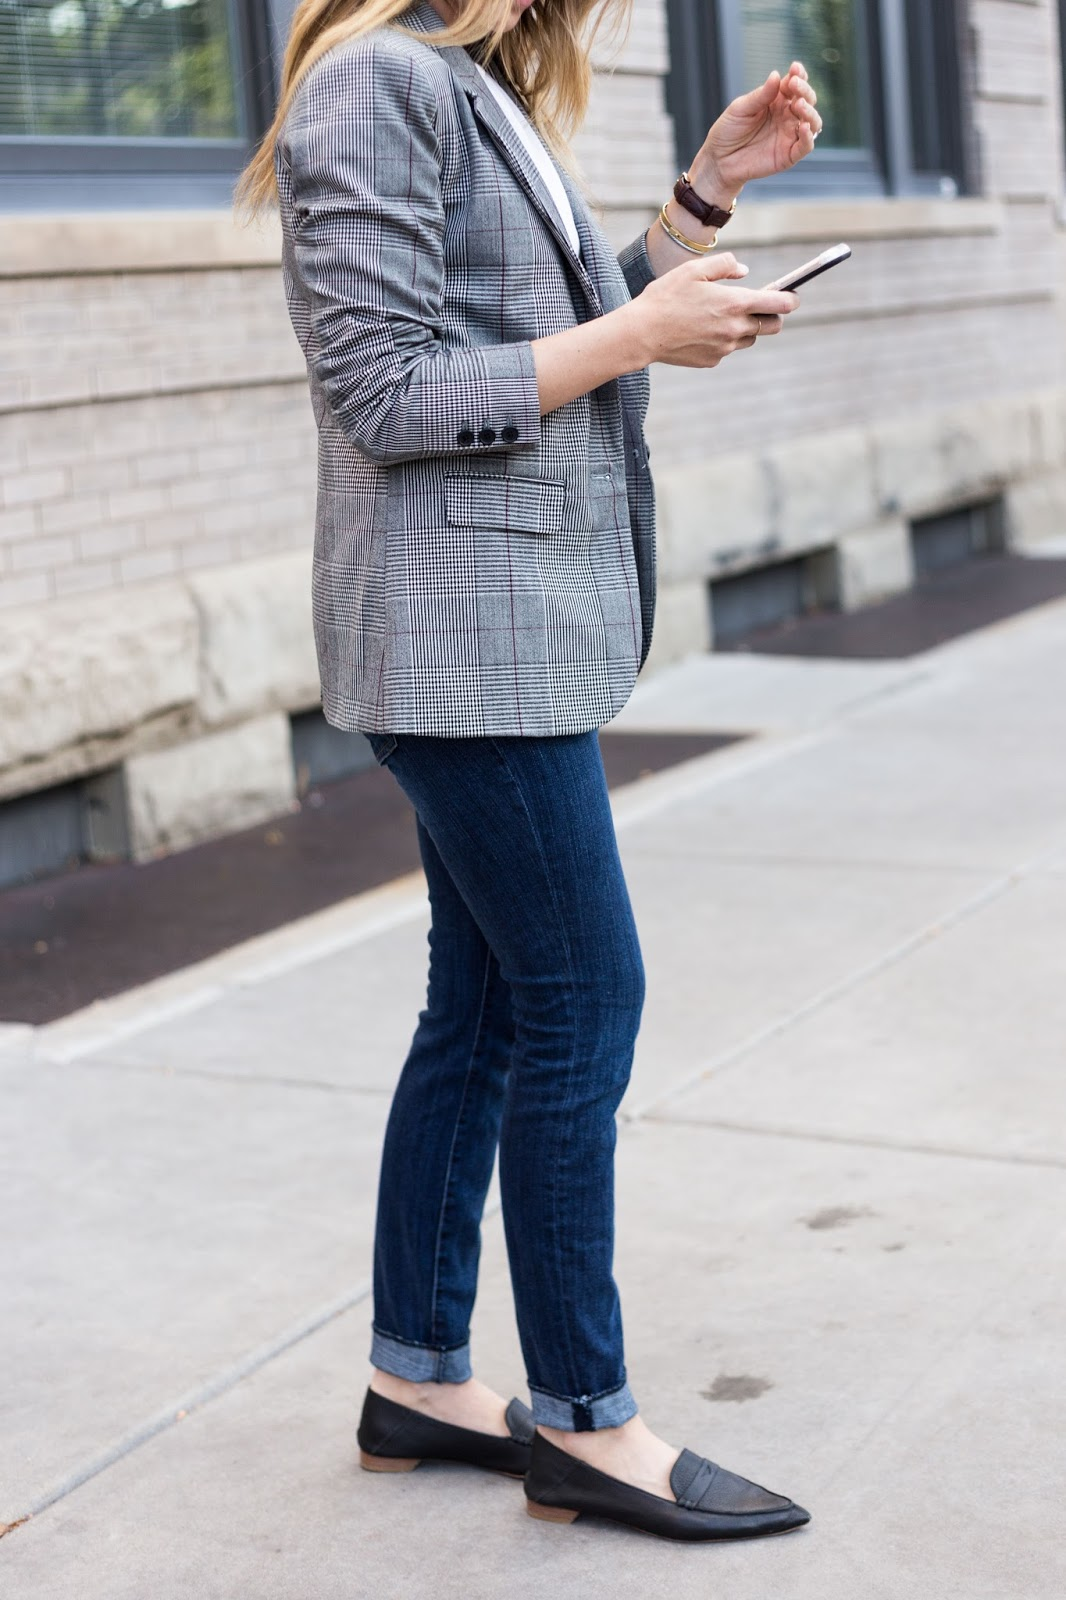 Boyfriend Inspired Outfit - Boyfriend Blazer by Colorado fashion blogger Eat Pray Wear Love